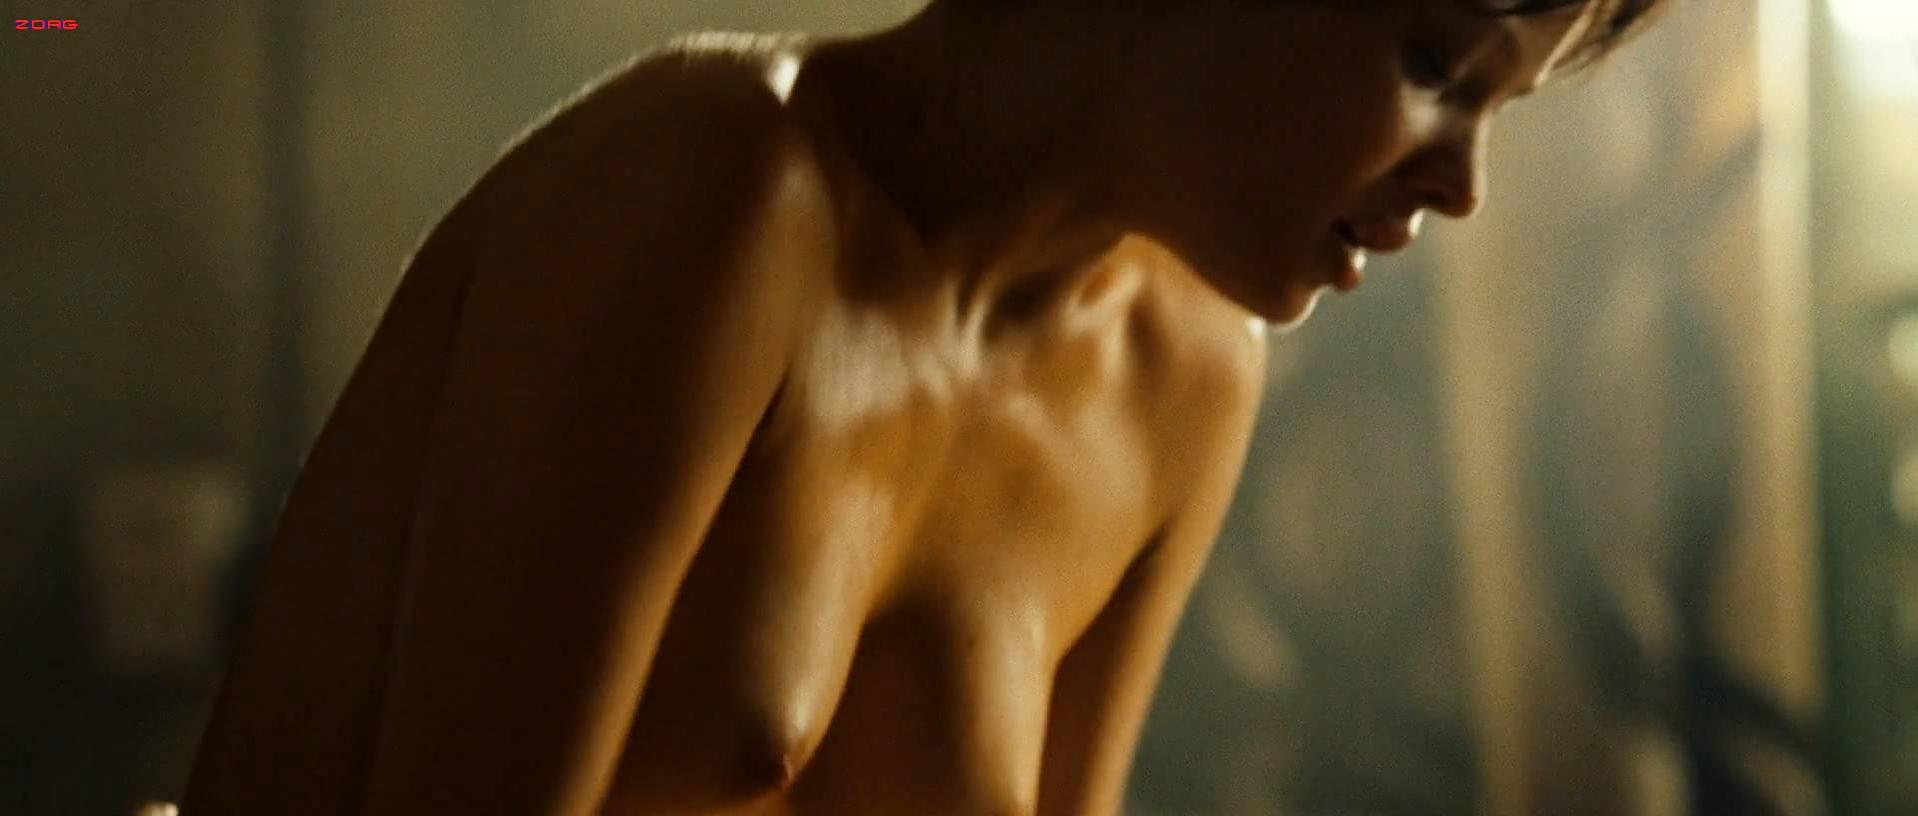 Melanie Thierry nude - Largo Winch (2008)